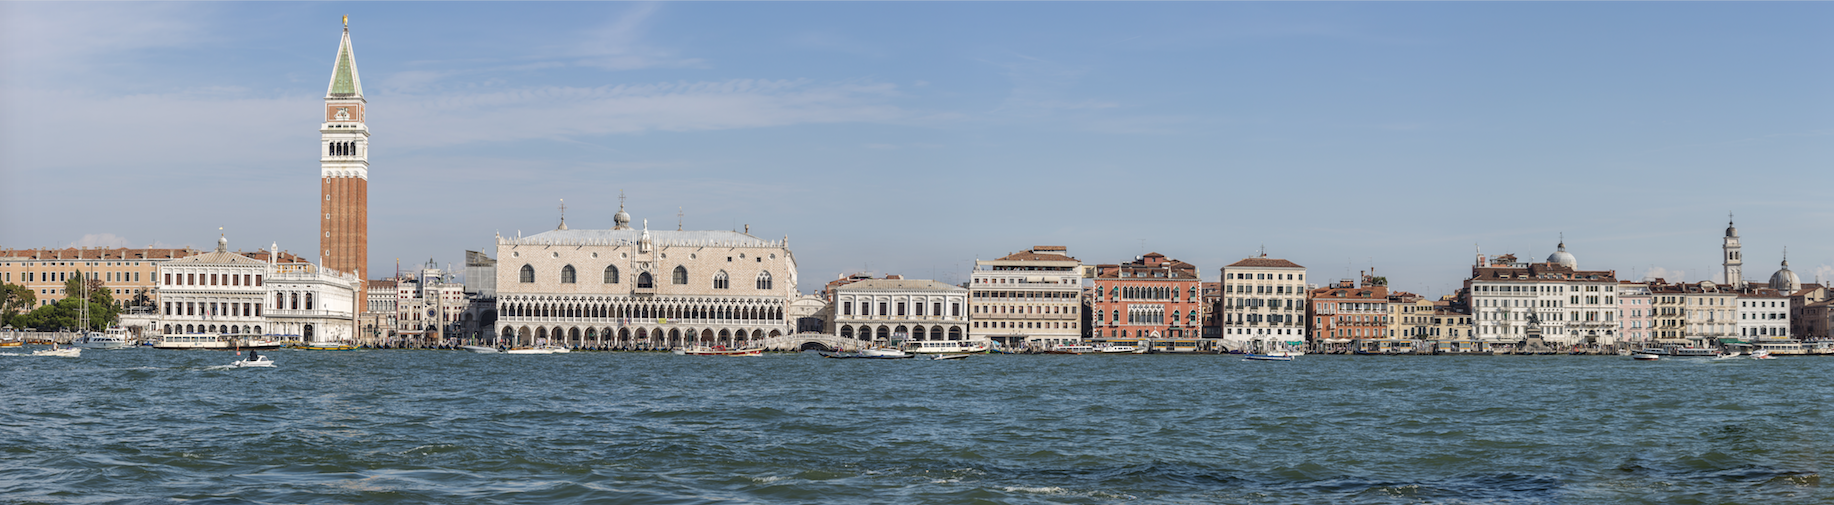 CAN VENICE BE SAVED?